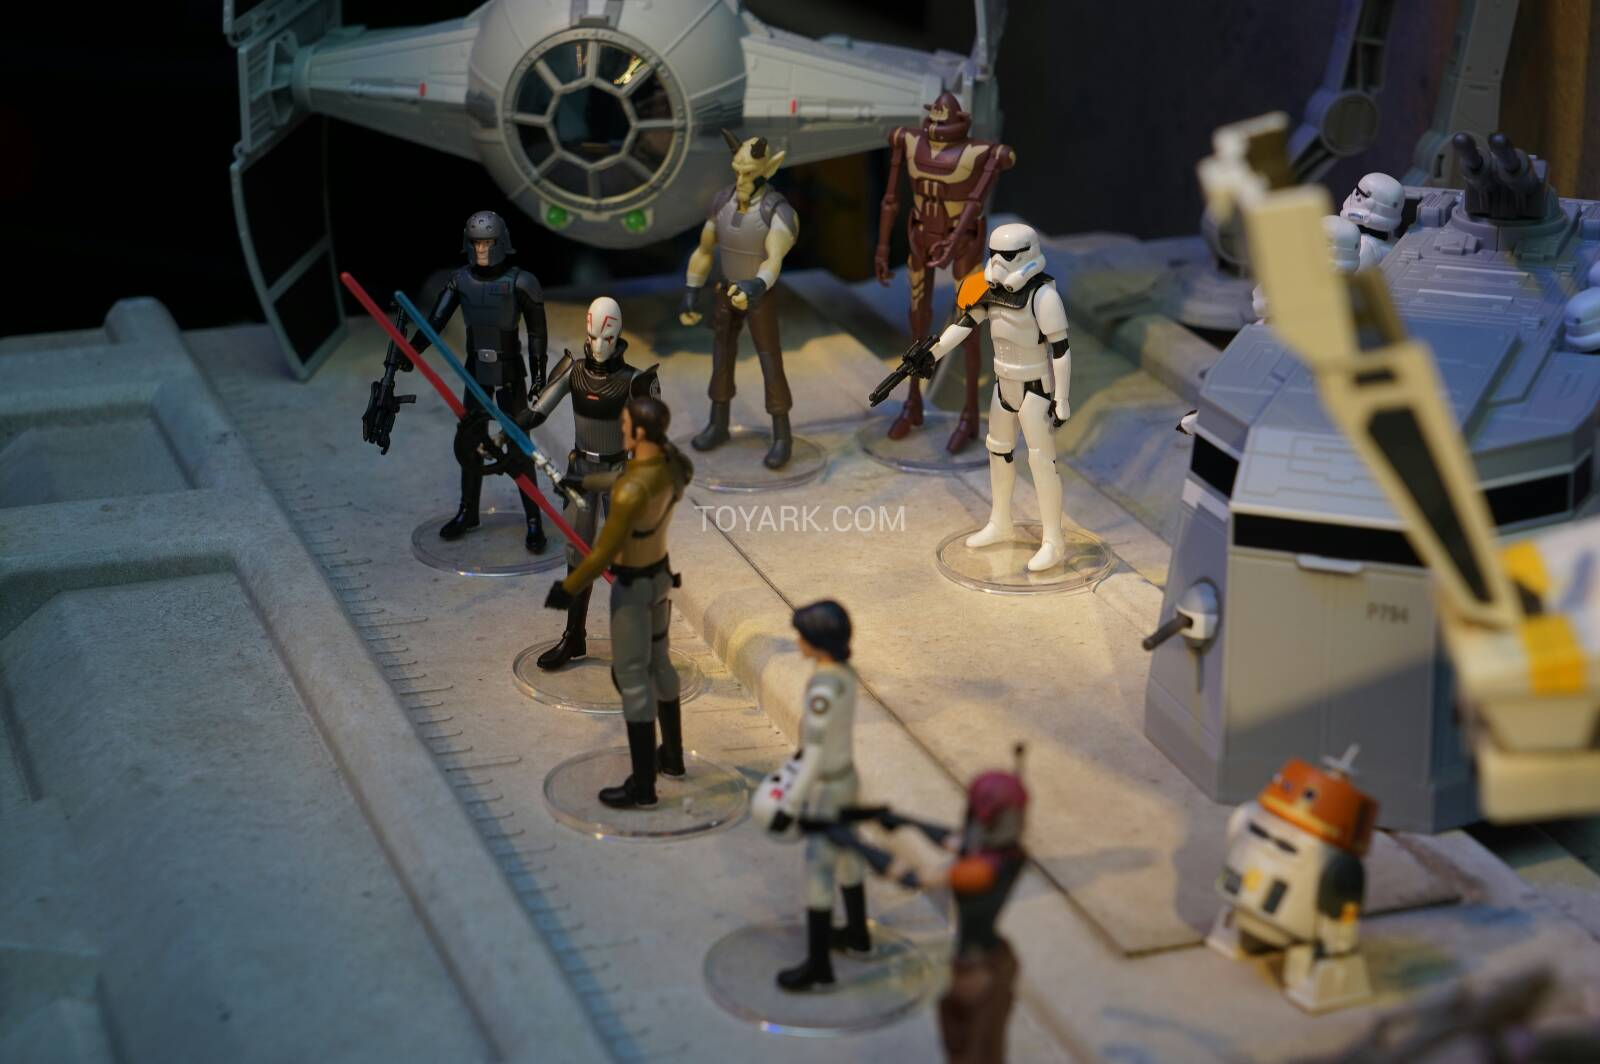 Star Wars Toys Hasbro : Hasbro star wars at toy fair the toyark news